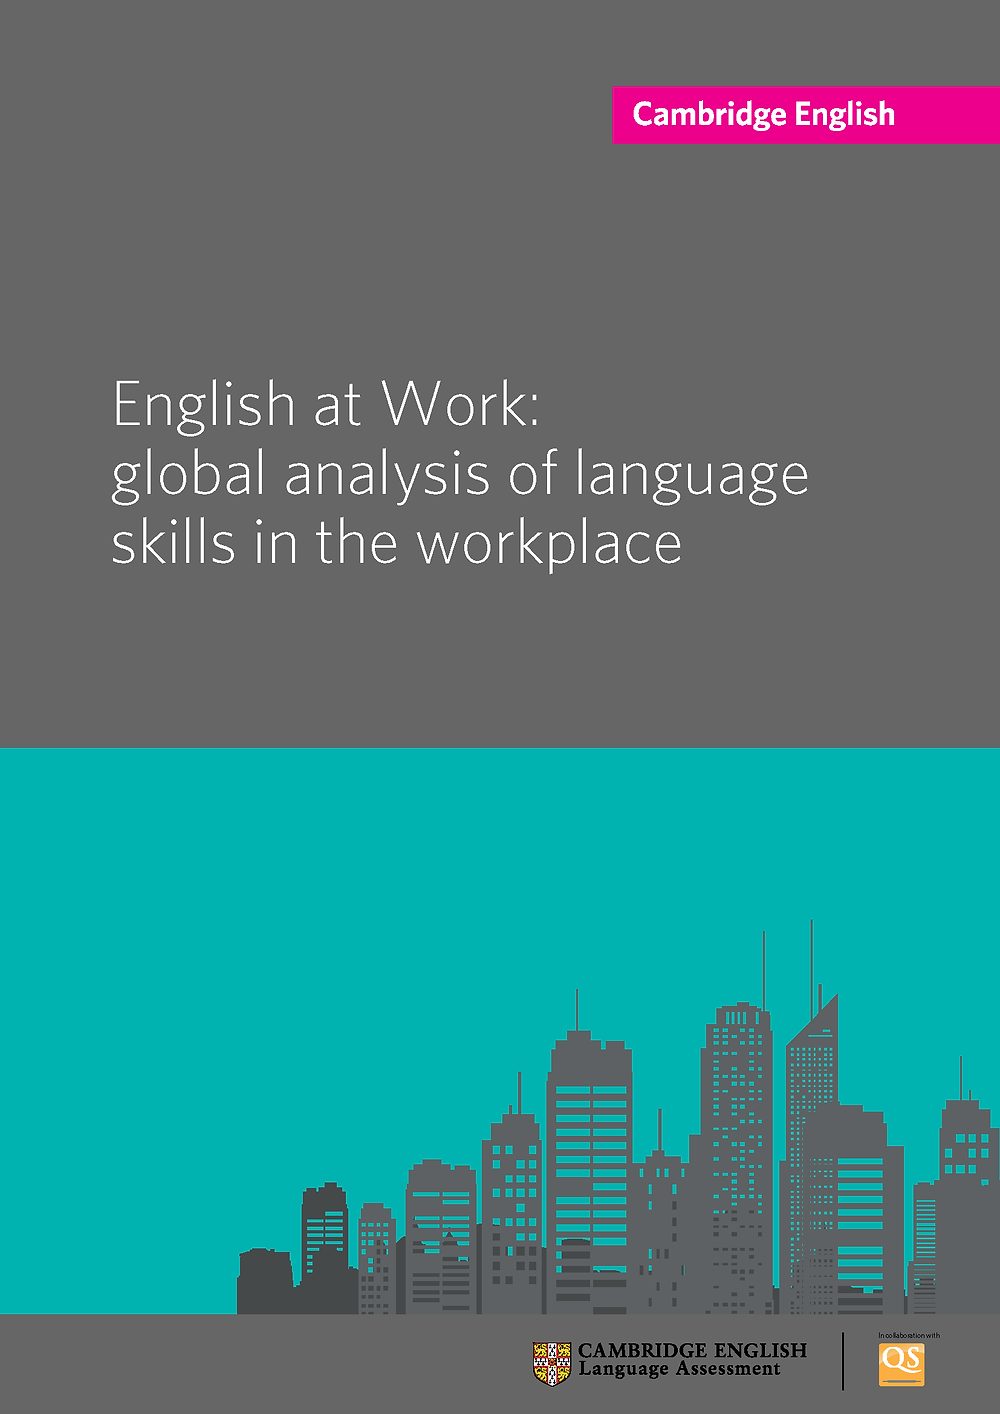 English at Work: Global analysis of language skills in the workplace